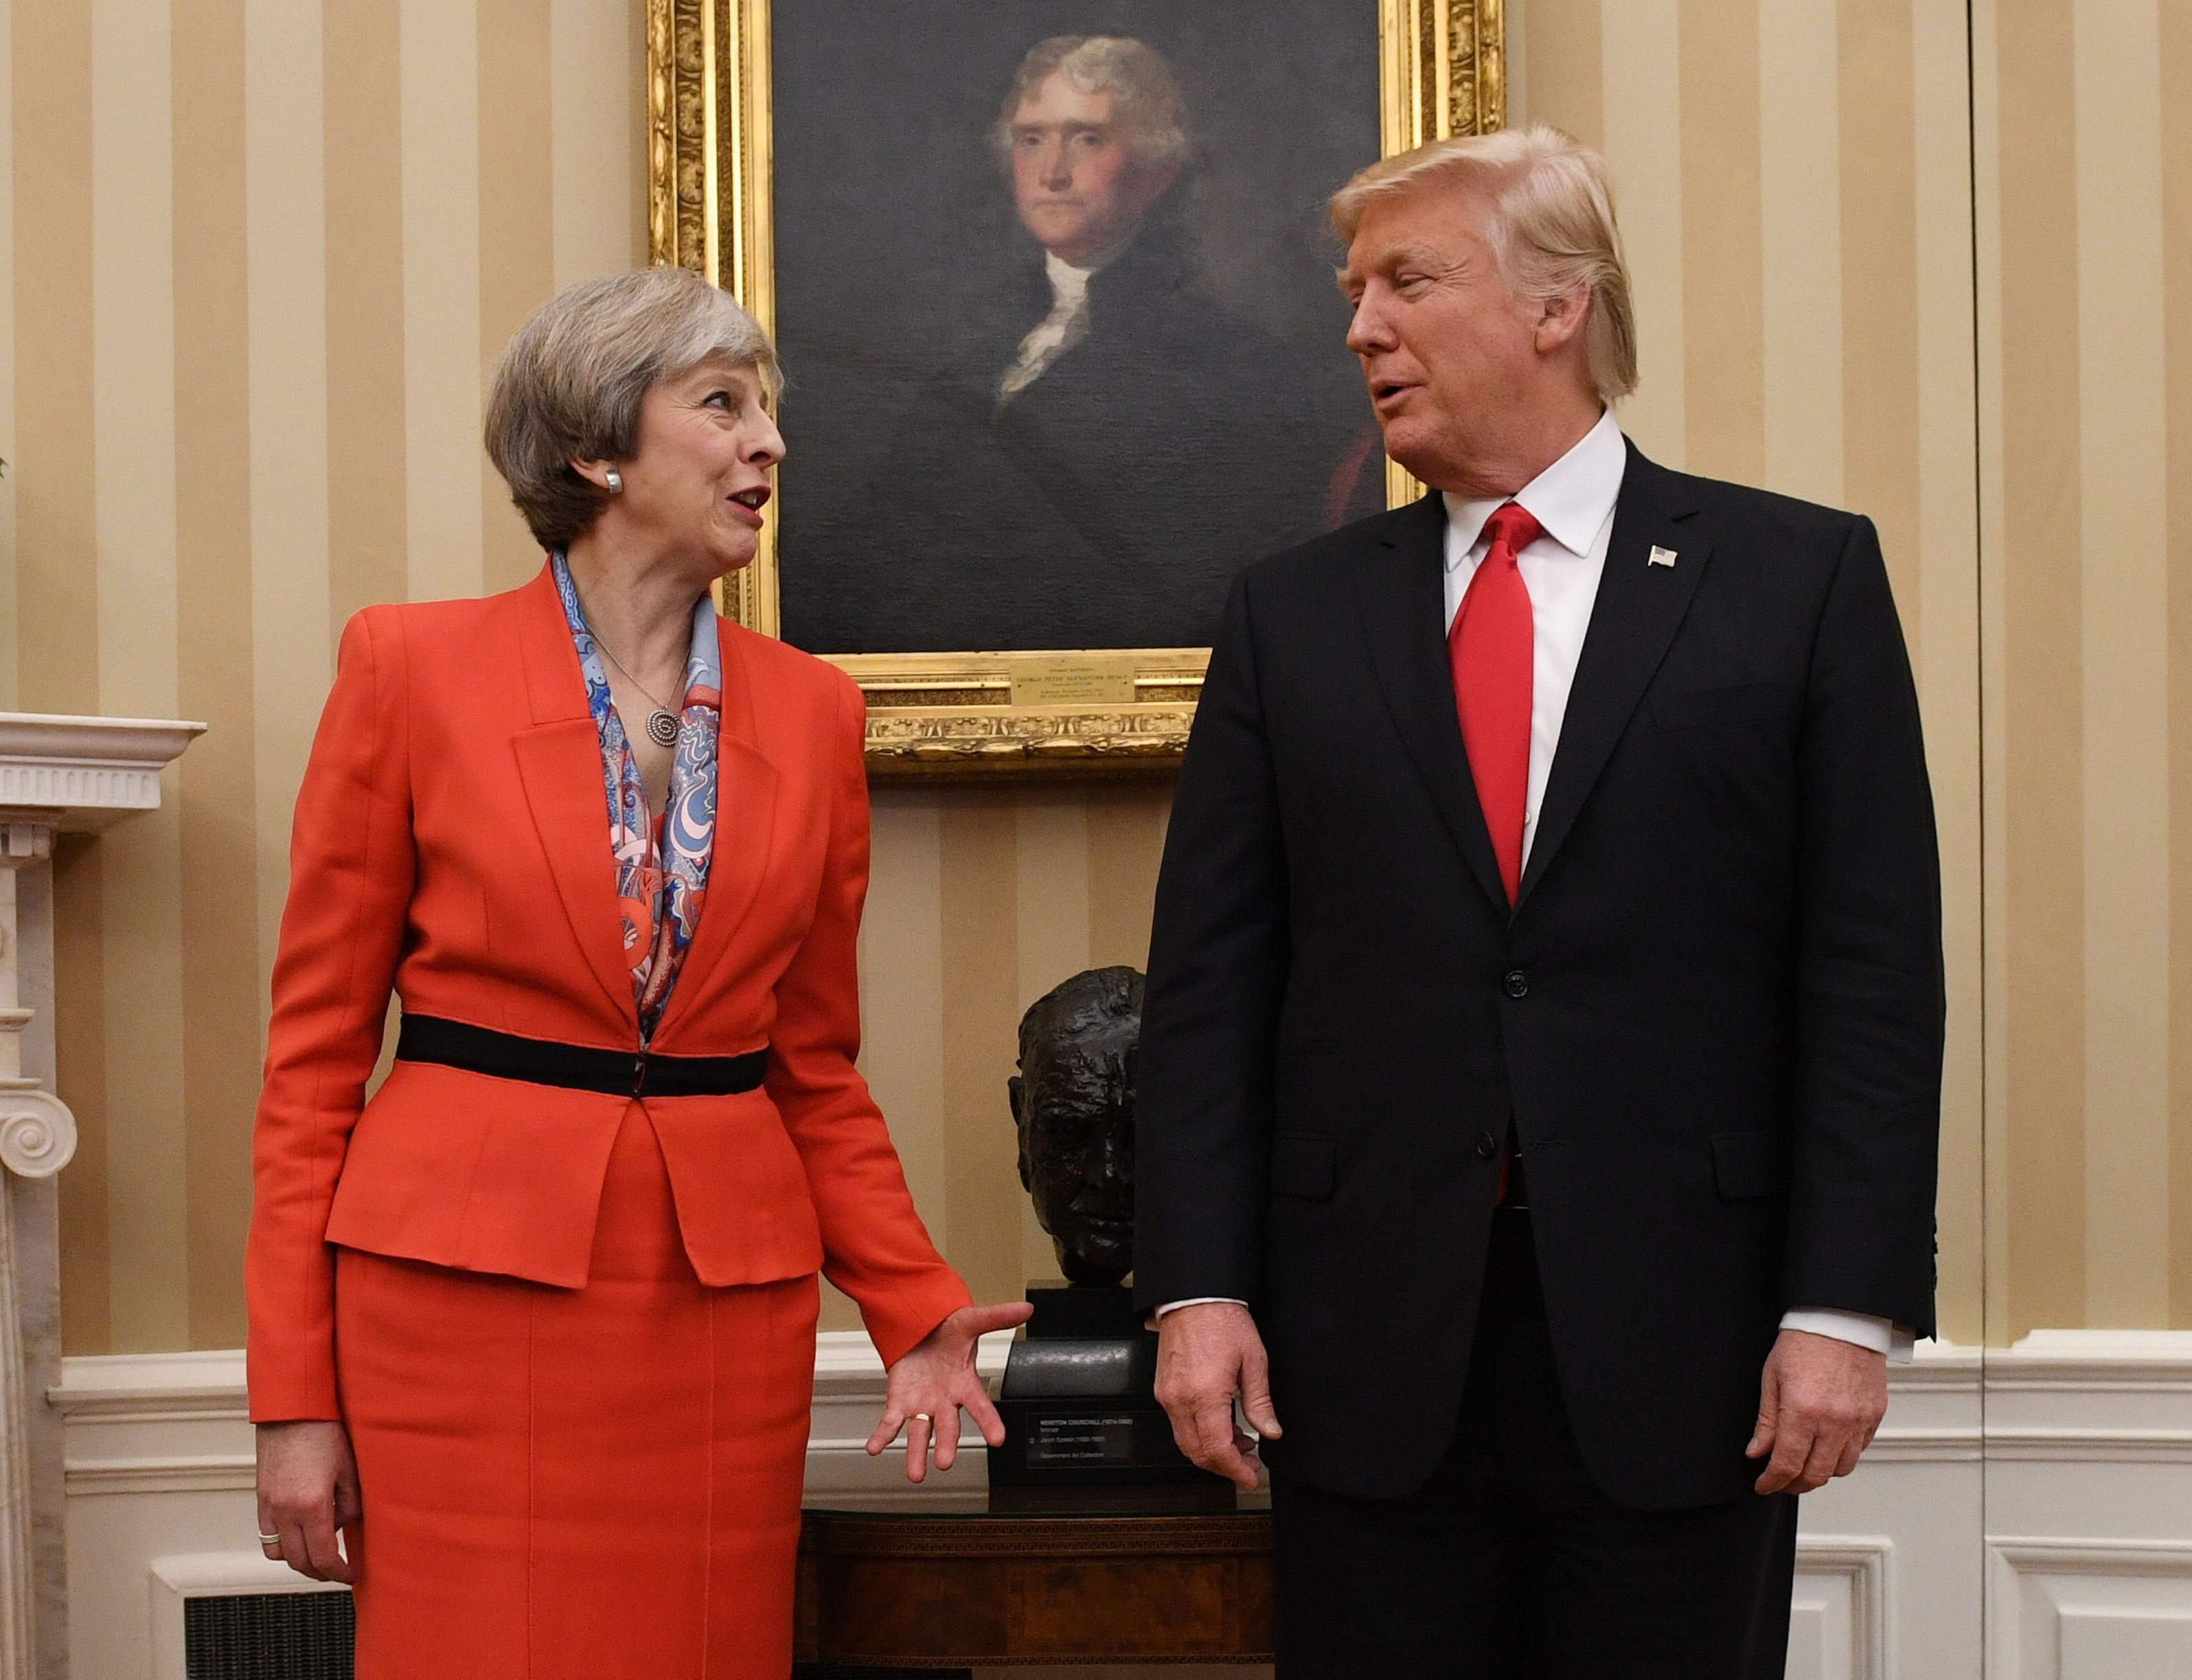 Trump to visit United Kingdom  in early 2018